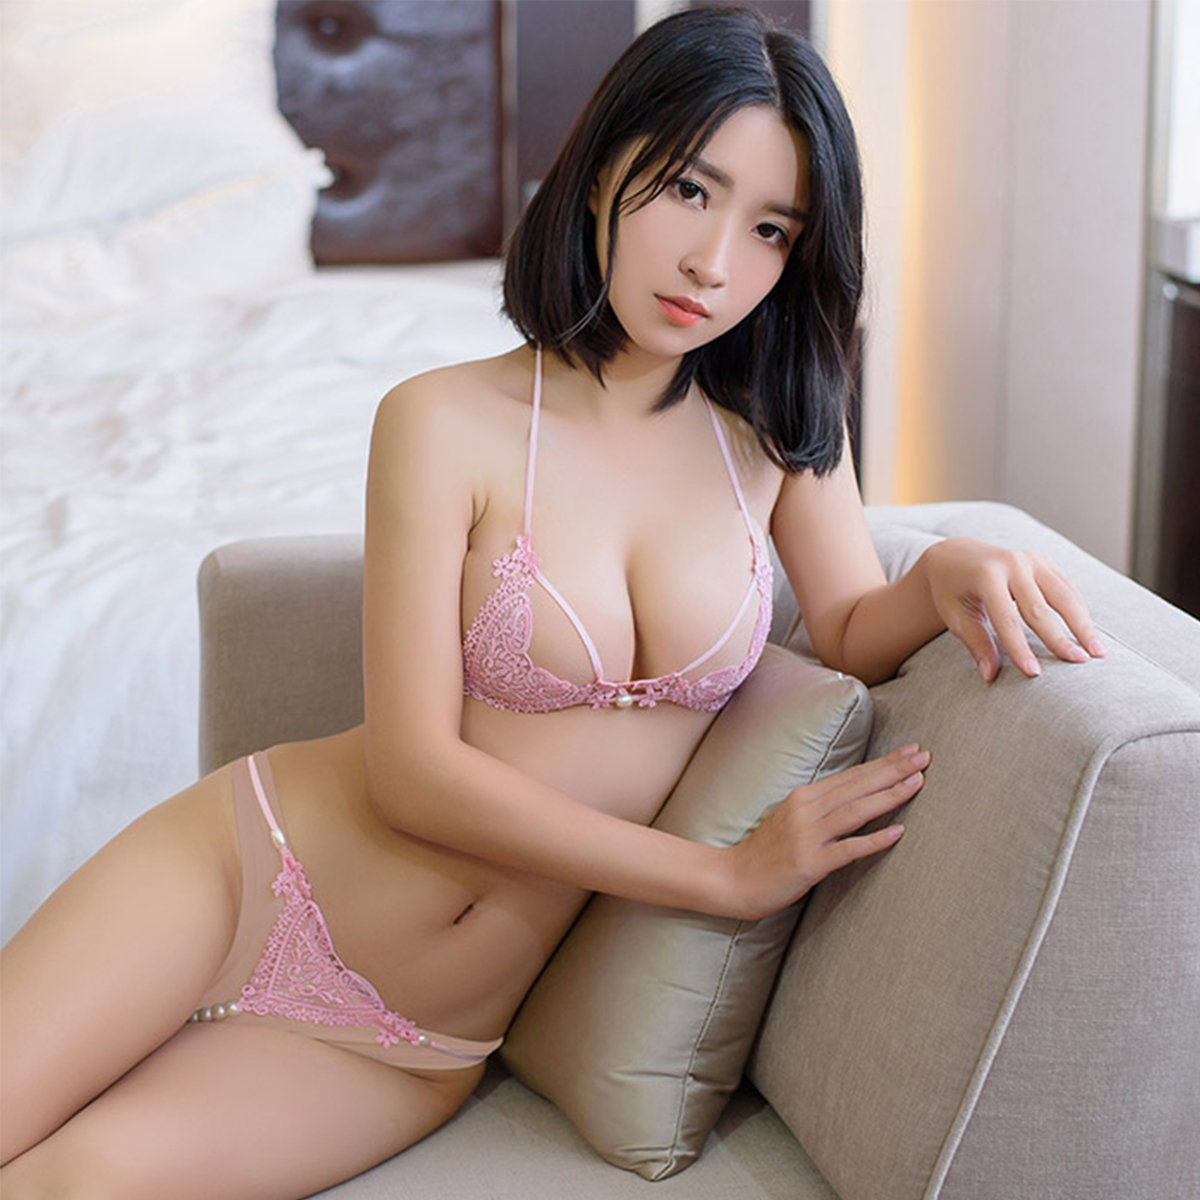 cool Asian girl in lingerie